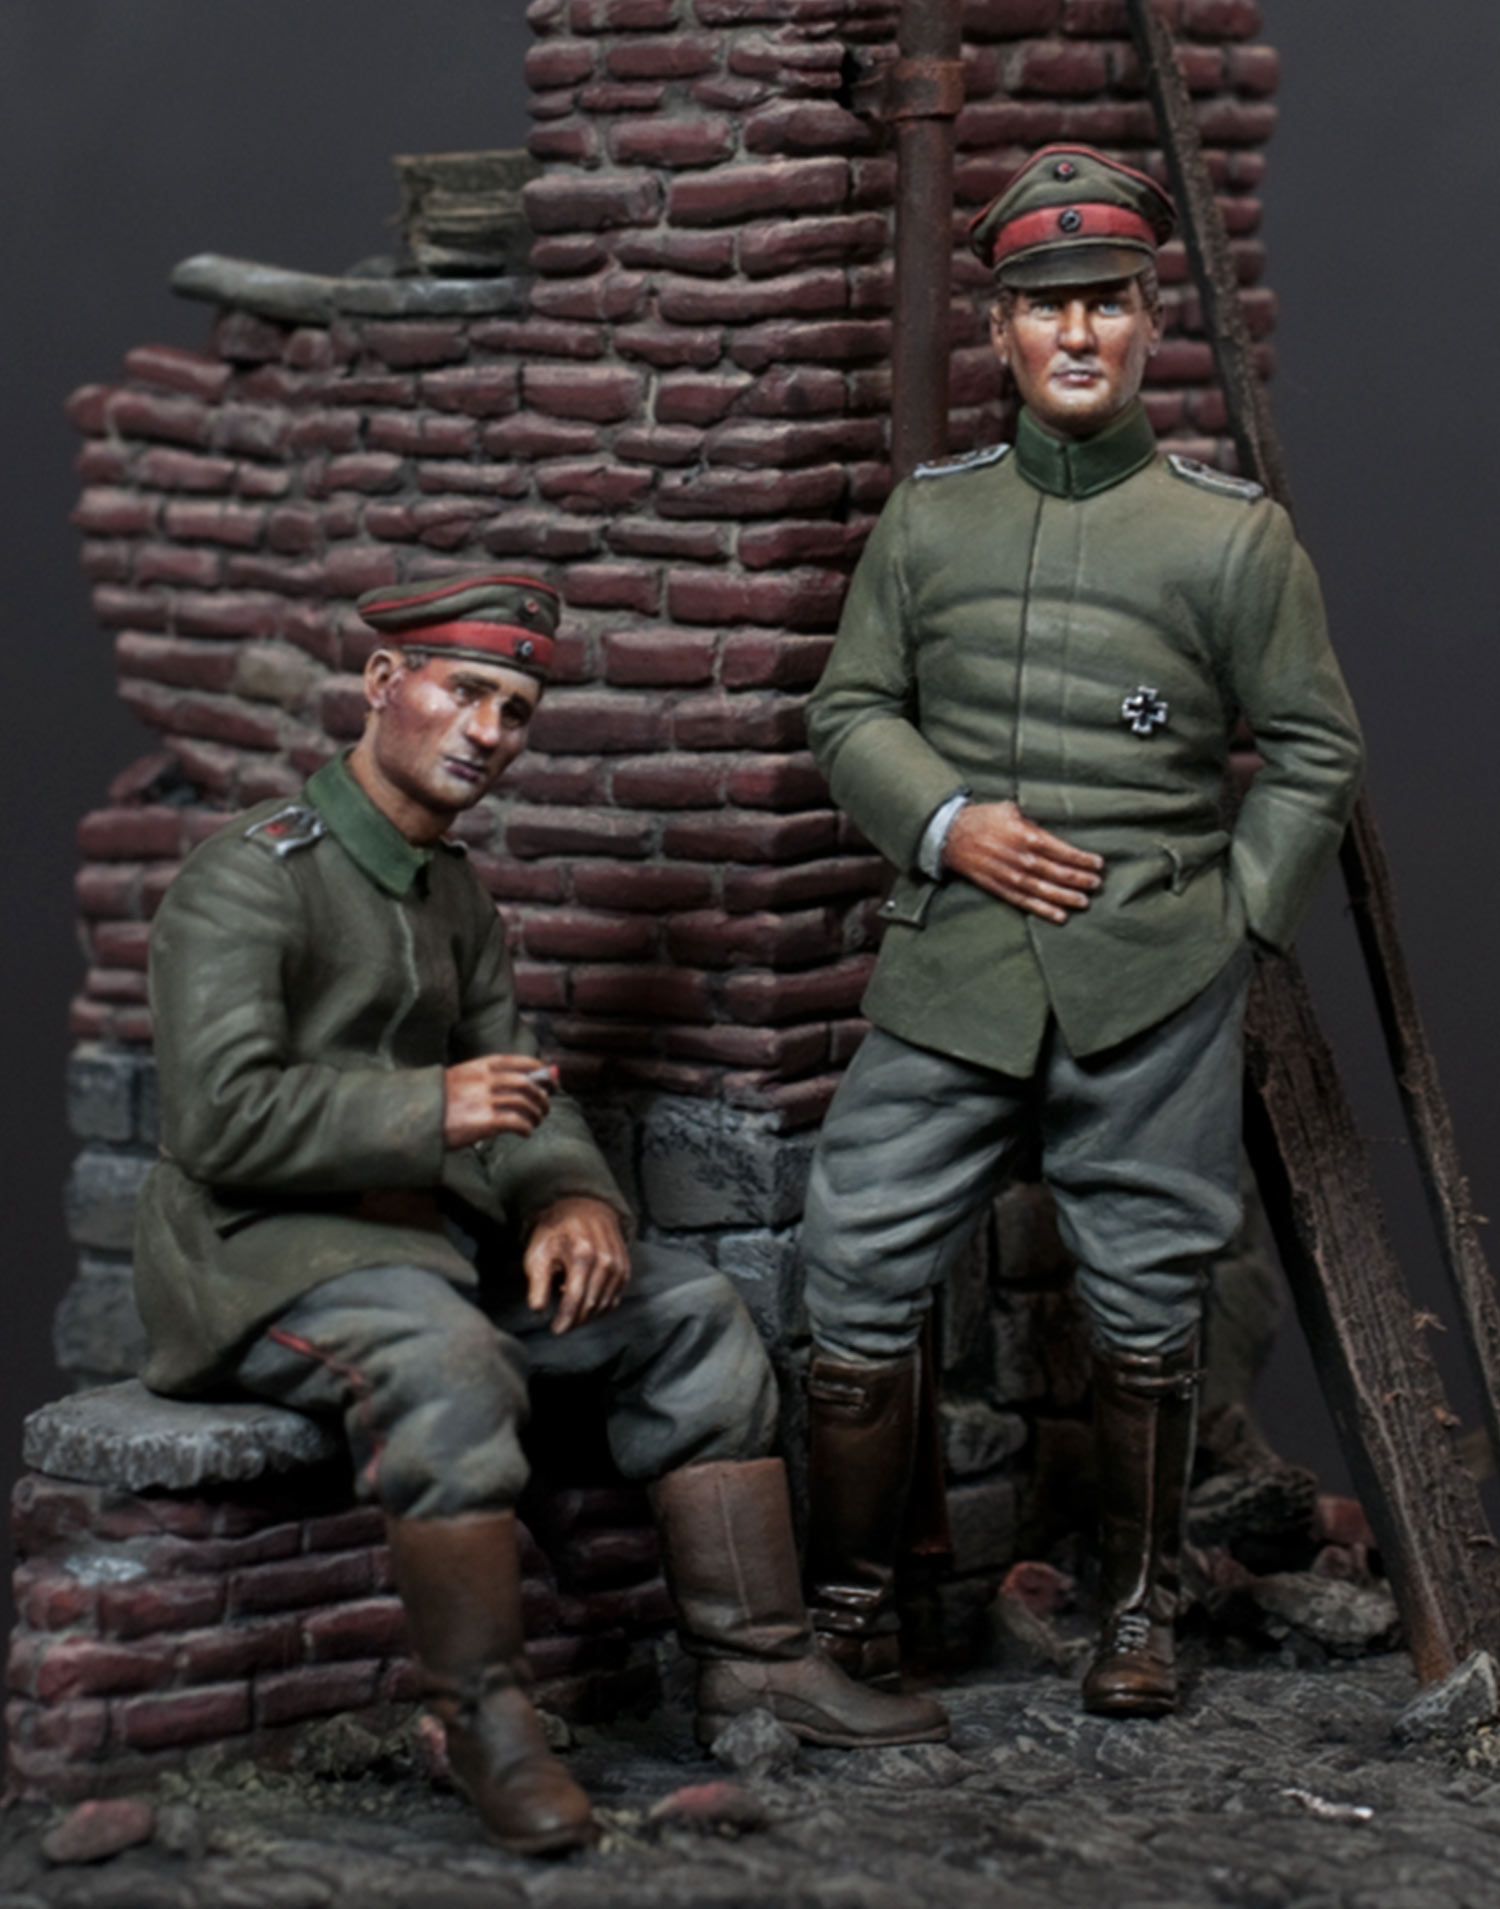 WWI German Infantry Officer with seated Infantryman